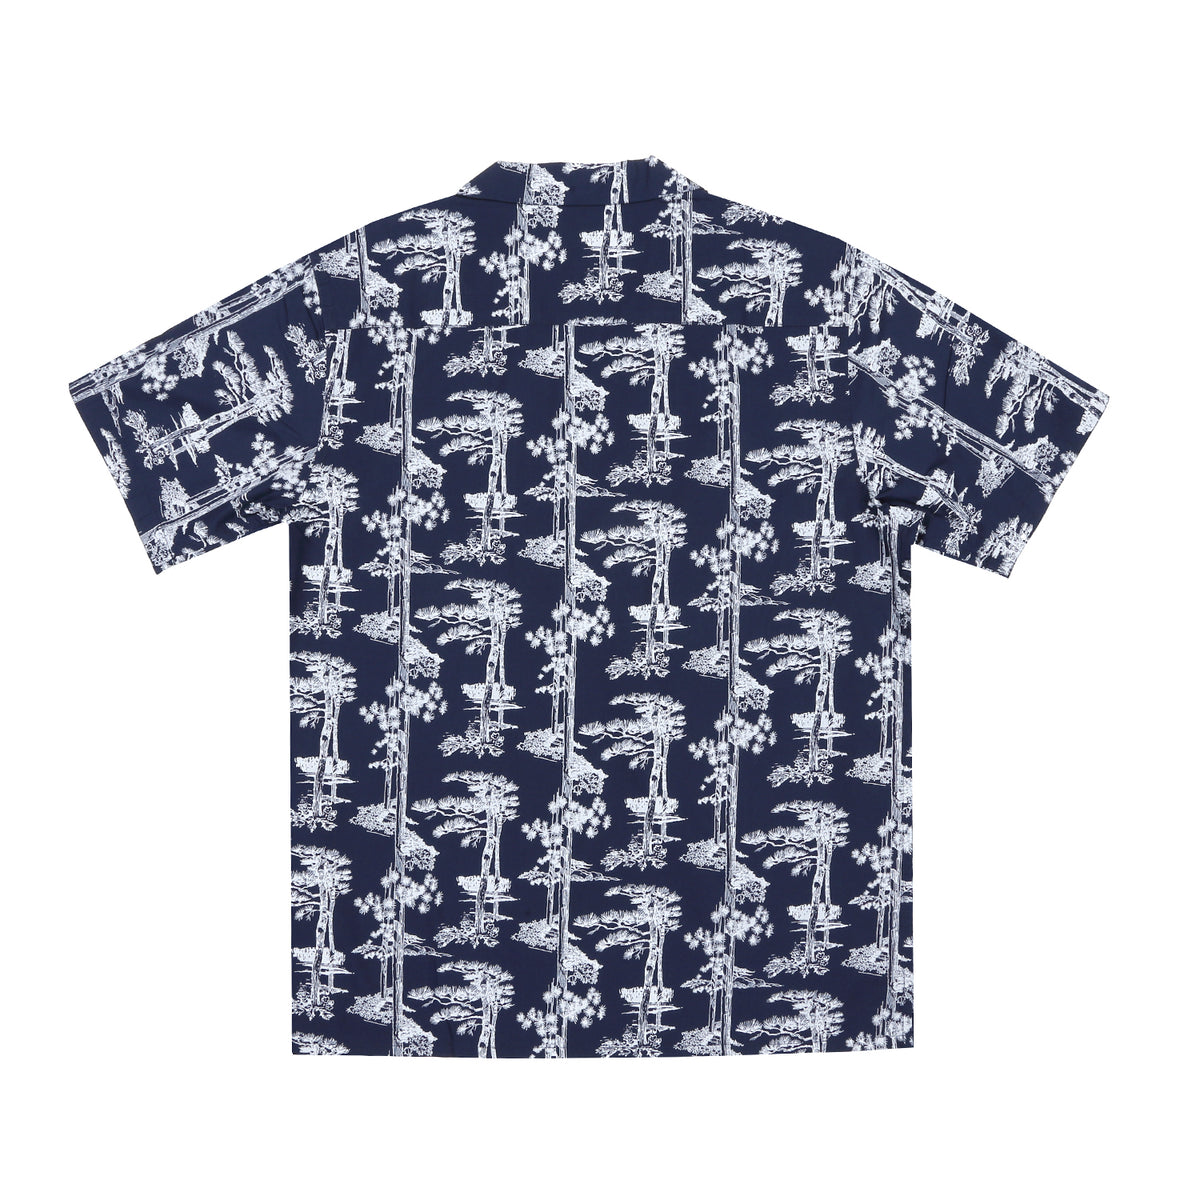 Carhartt - S/S Hawaii Shirt Pine Print - Blue/White